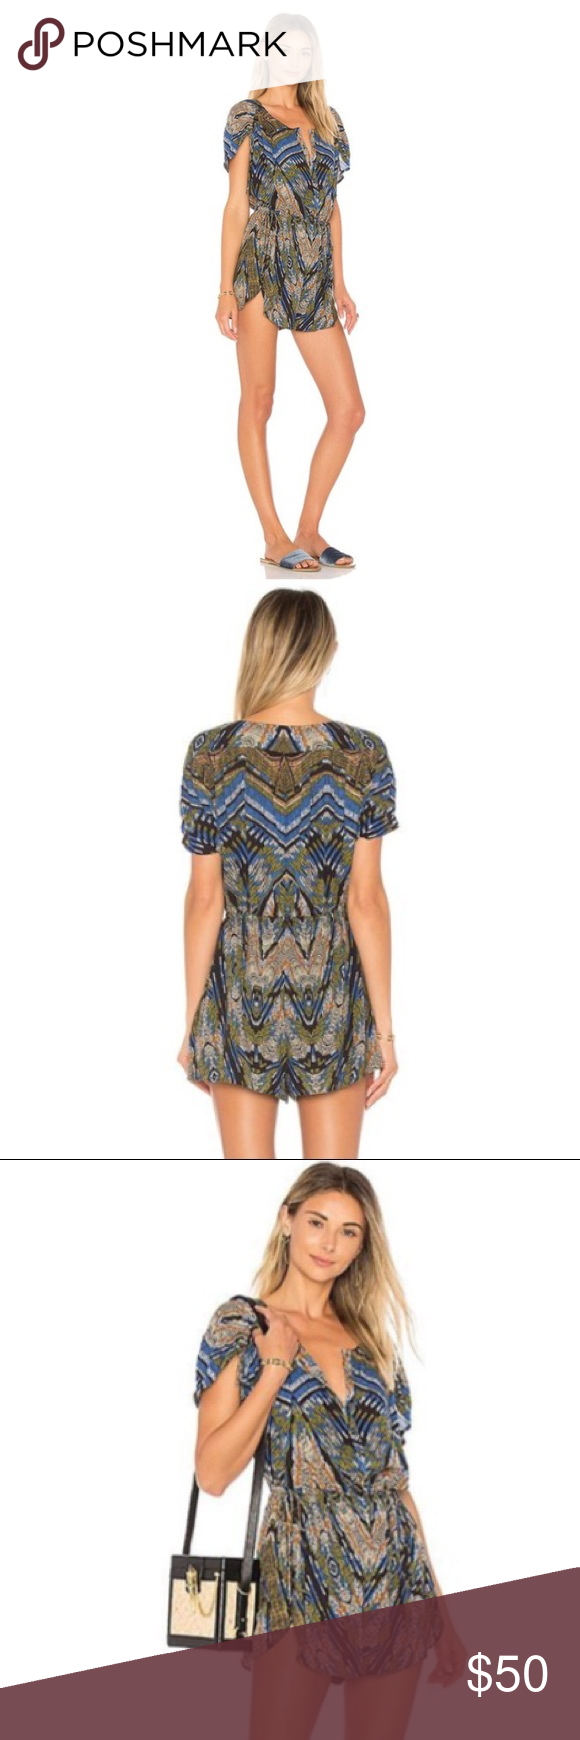 40efc39120d5 Free People Dream All Night Romper Wide awake and feeling whimsical in the Dream  All Night Romper by Free People. A mix of moody shades pattern this swingy  ...